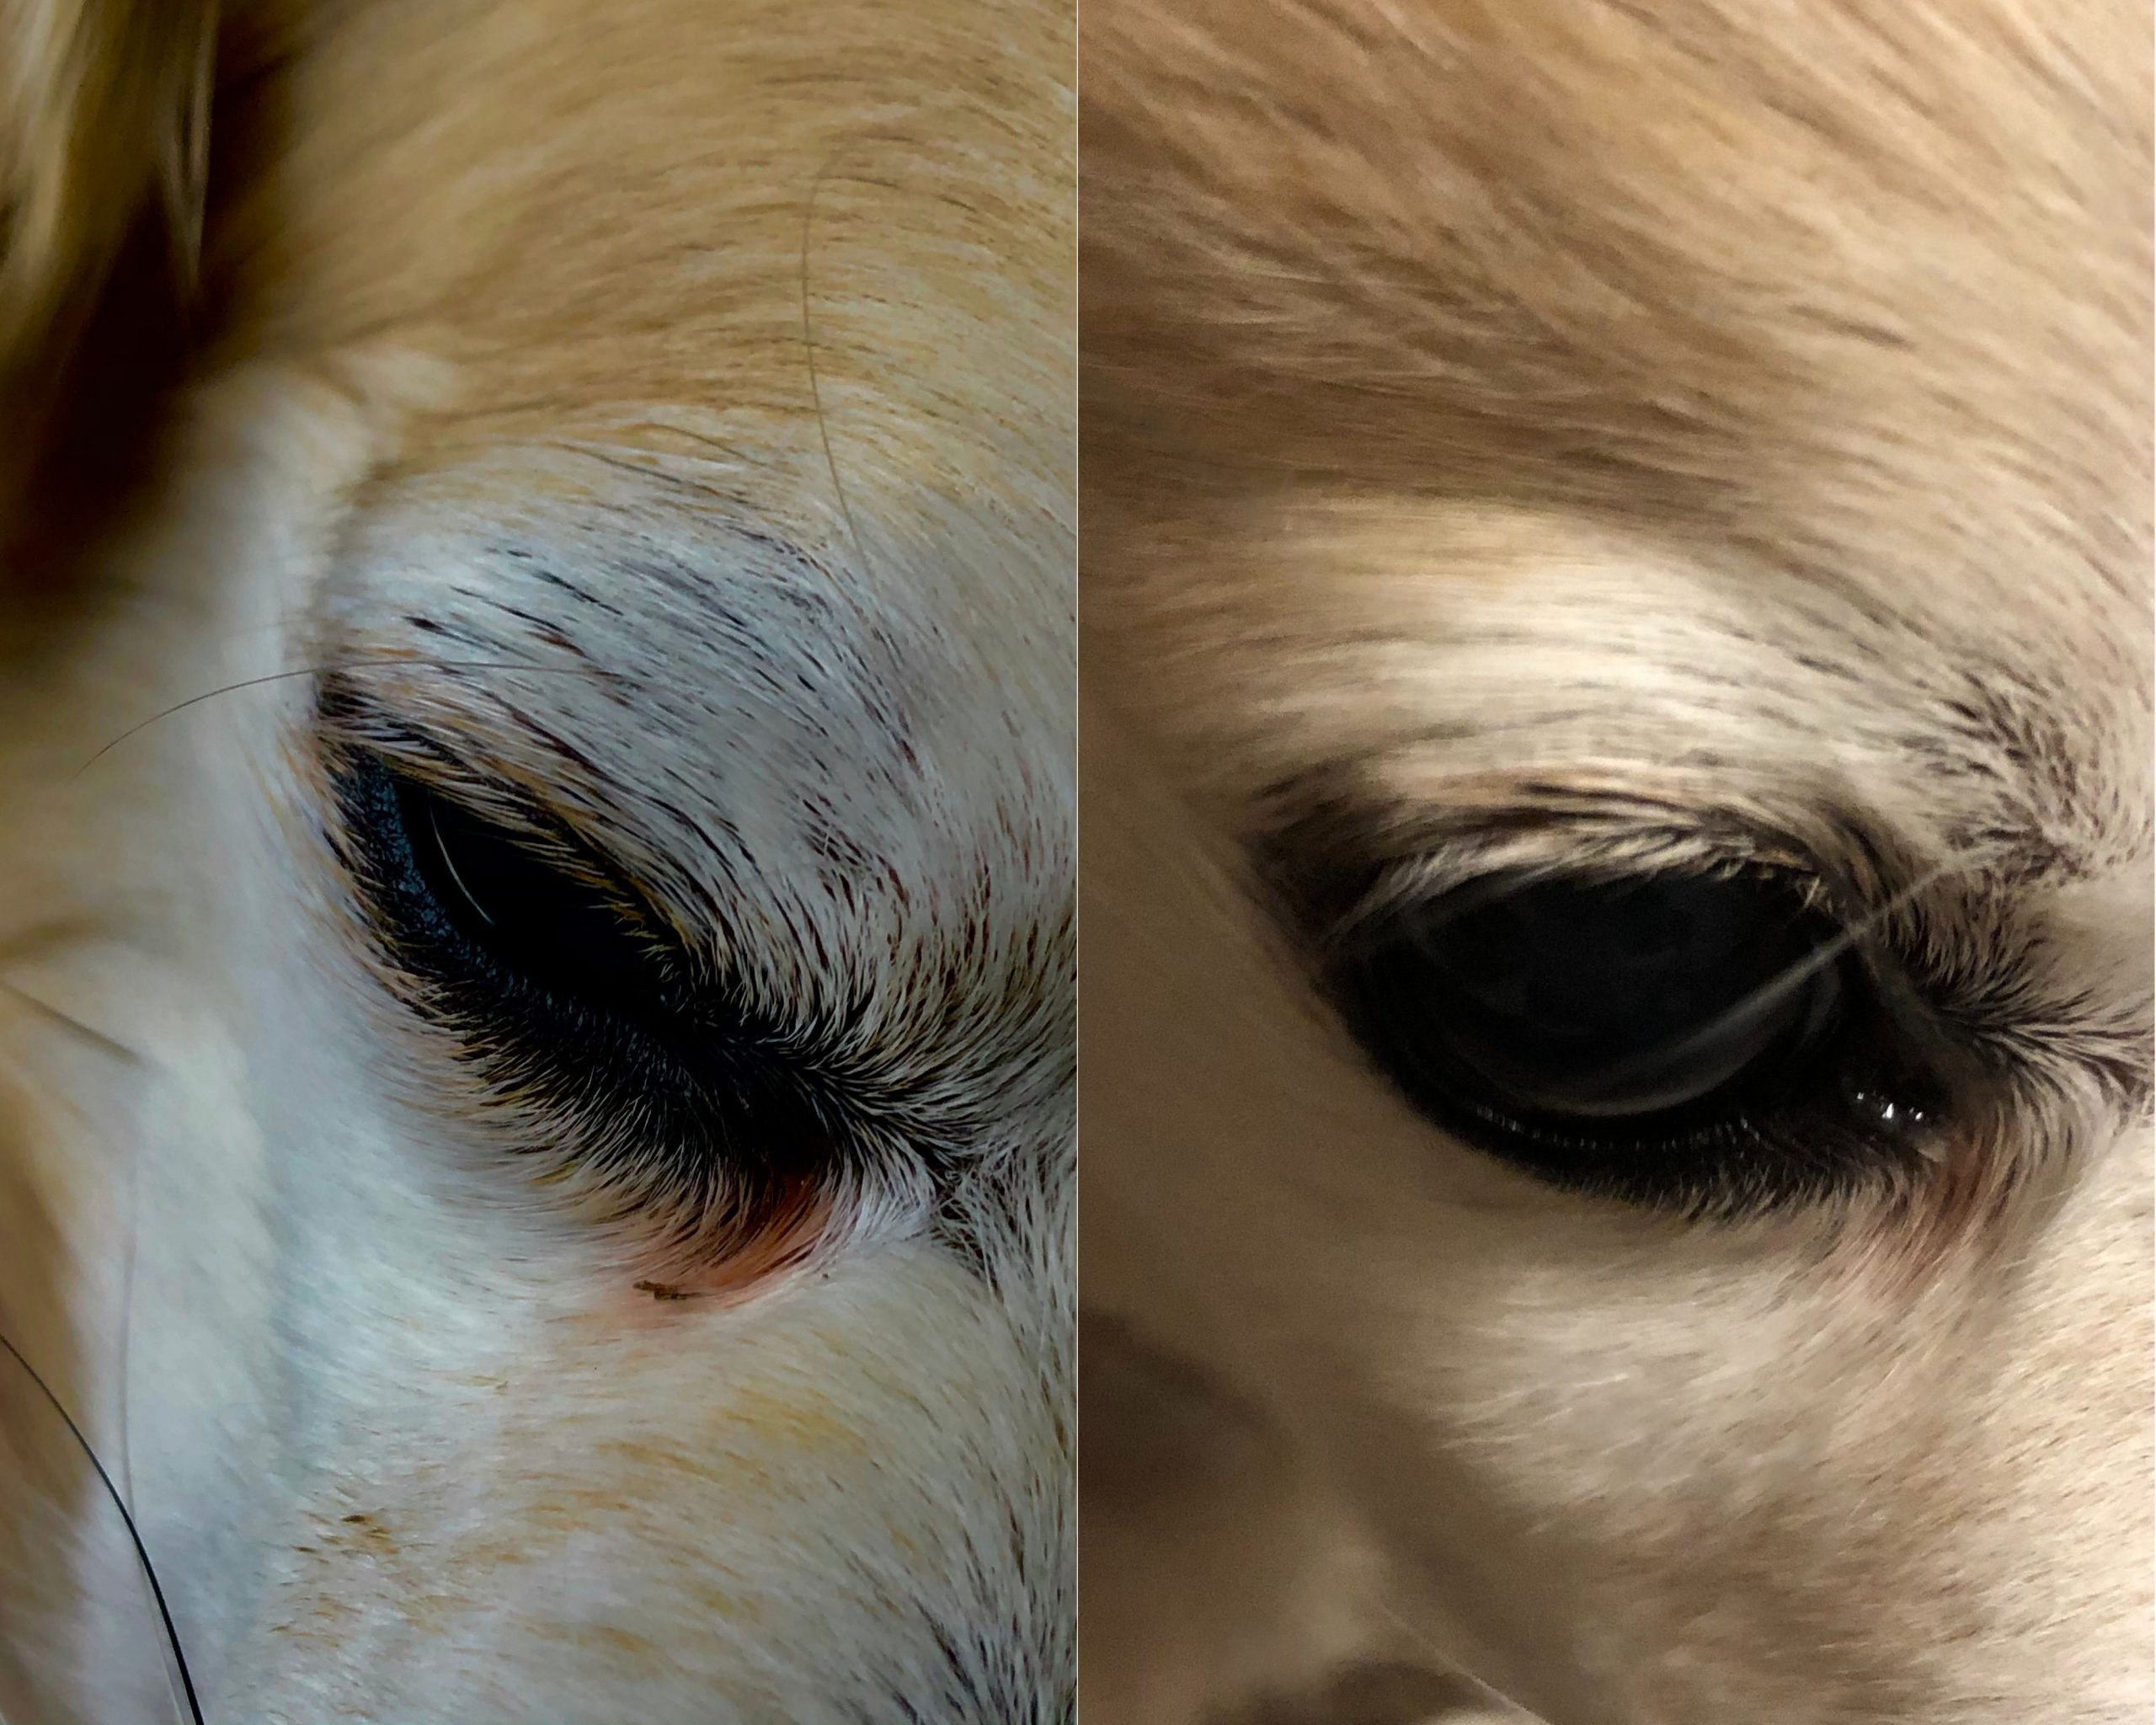 Before and after photo of a chihuahua that uses PawPurity Tear Stain Remover Powder. The owner uses the solution first, then applies the powder about once a week.